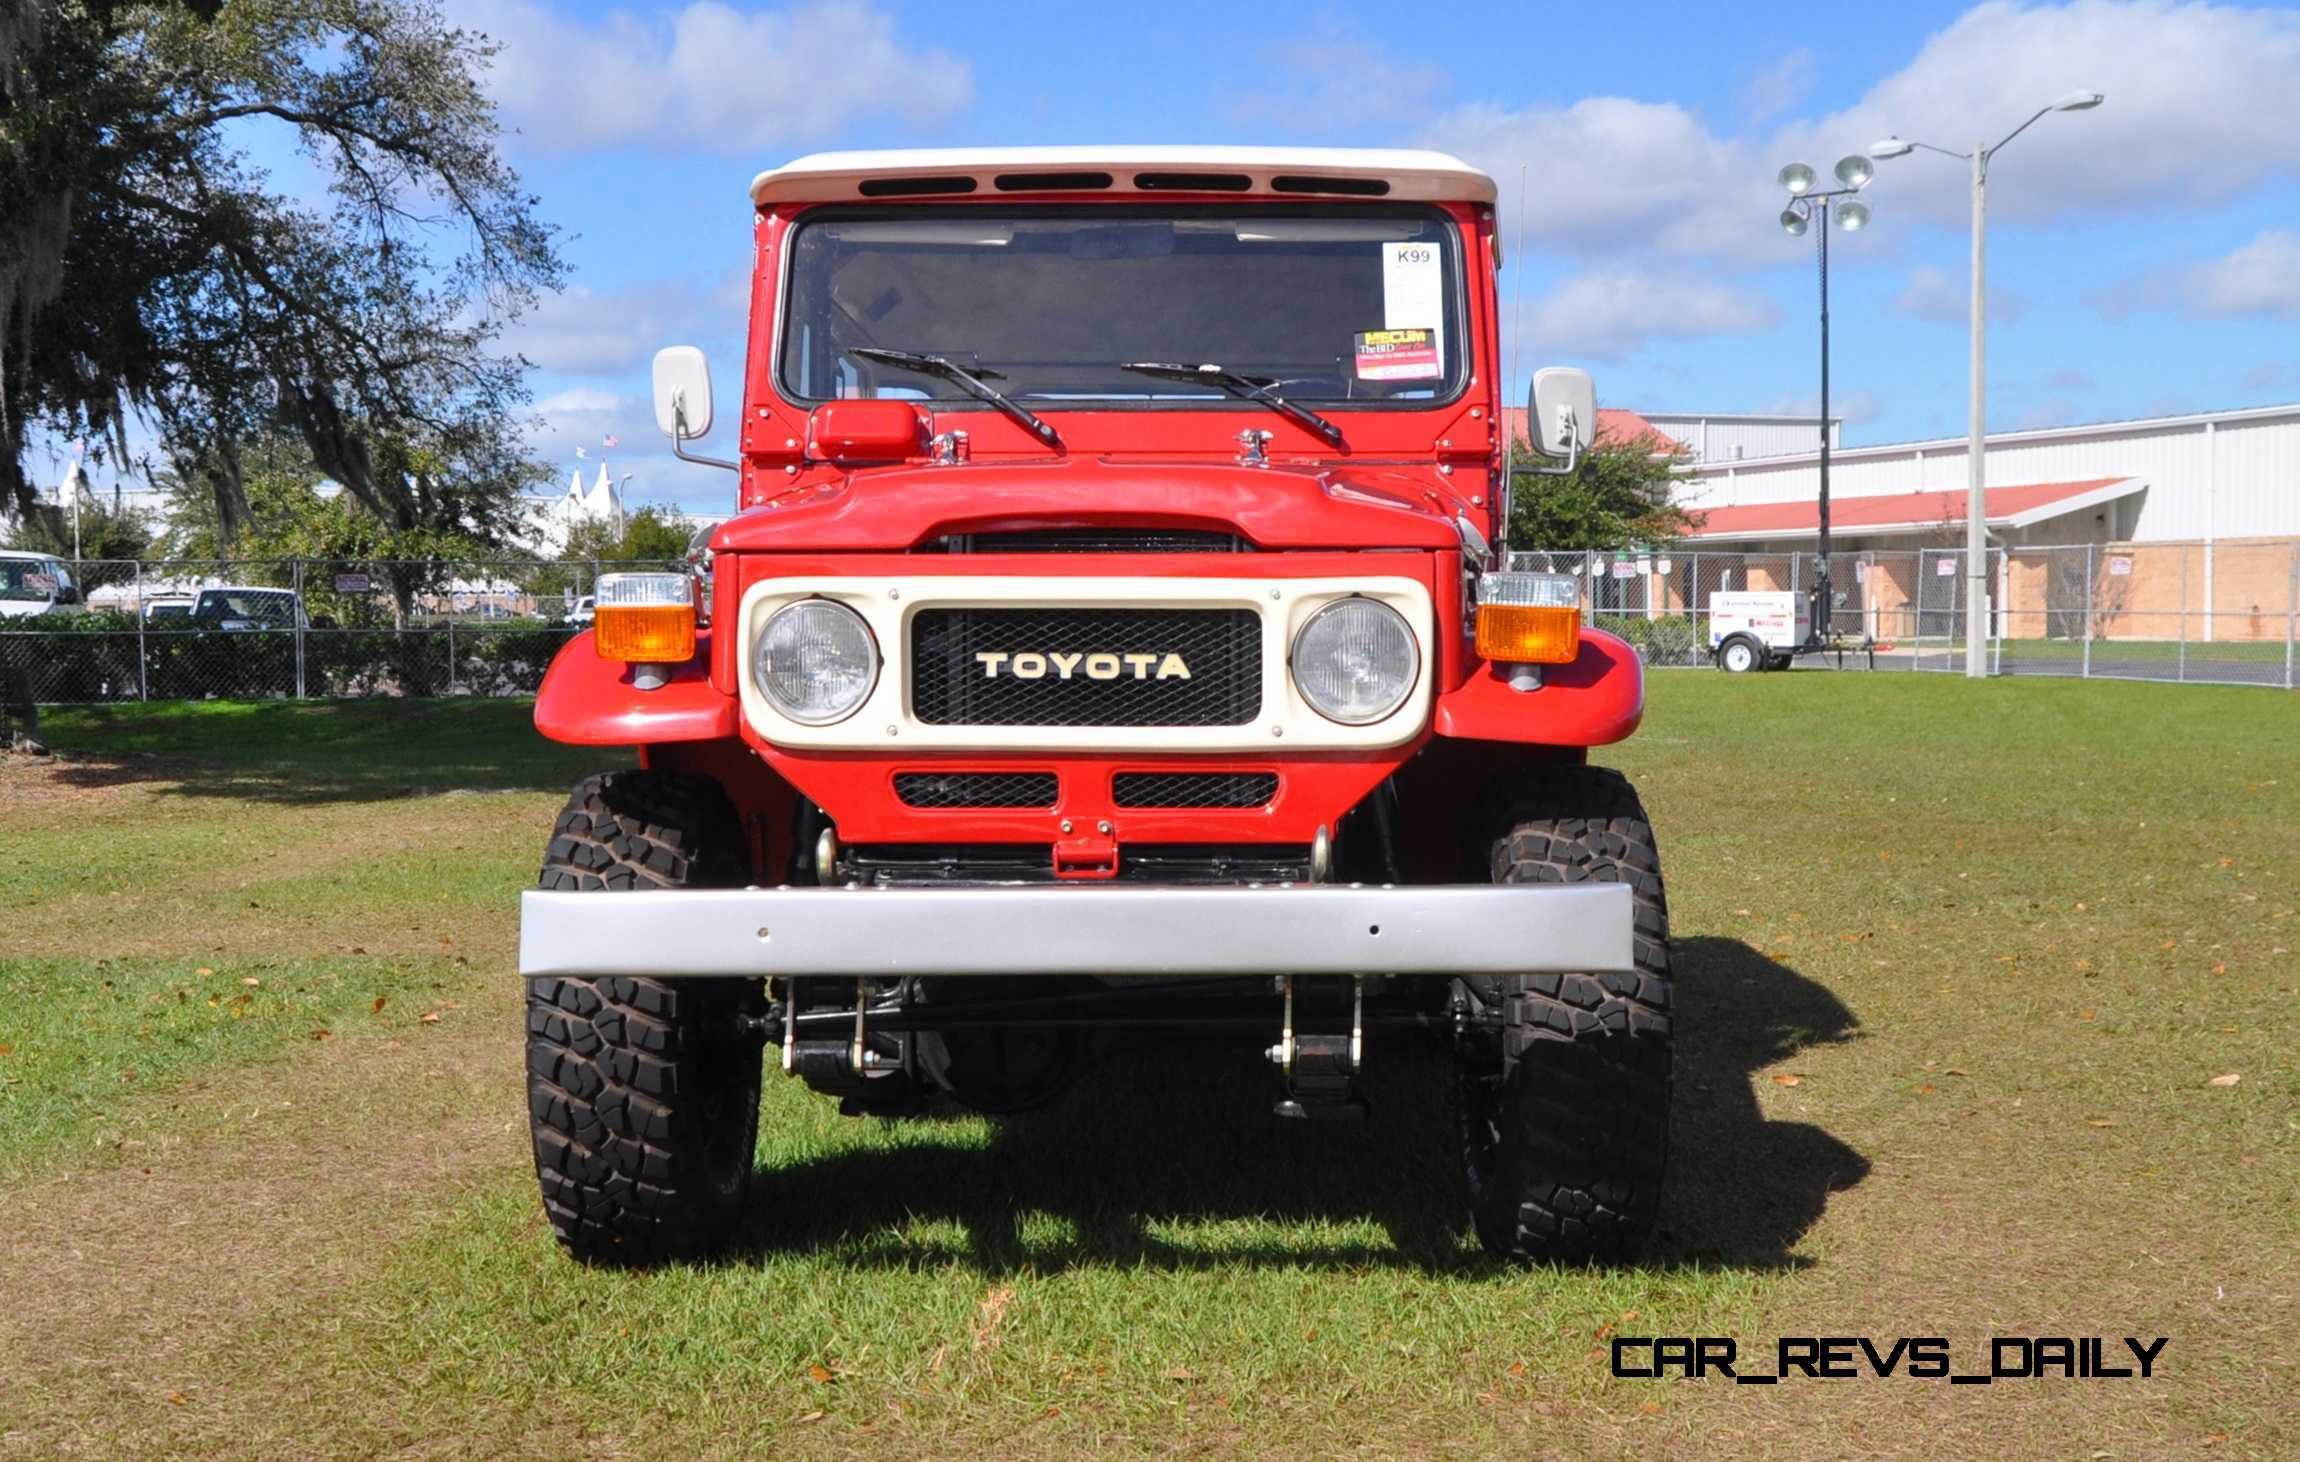 mecum florida  favorites toyota fj land cruiser  matching trolley car revs dailycom